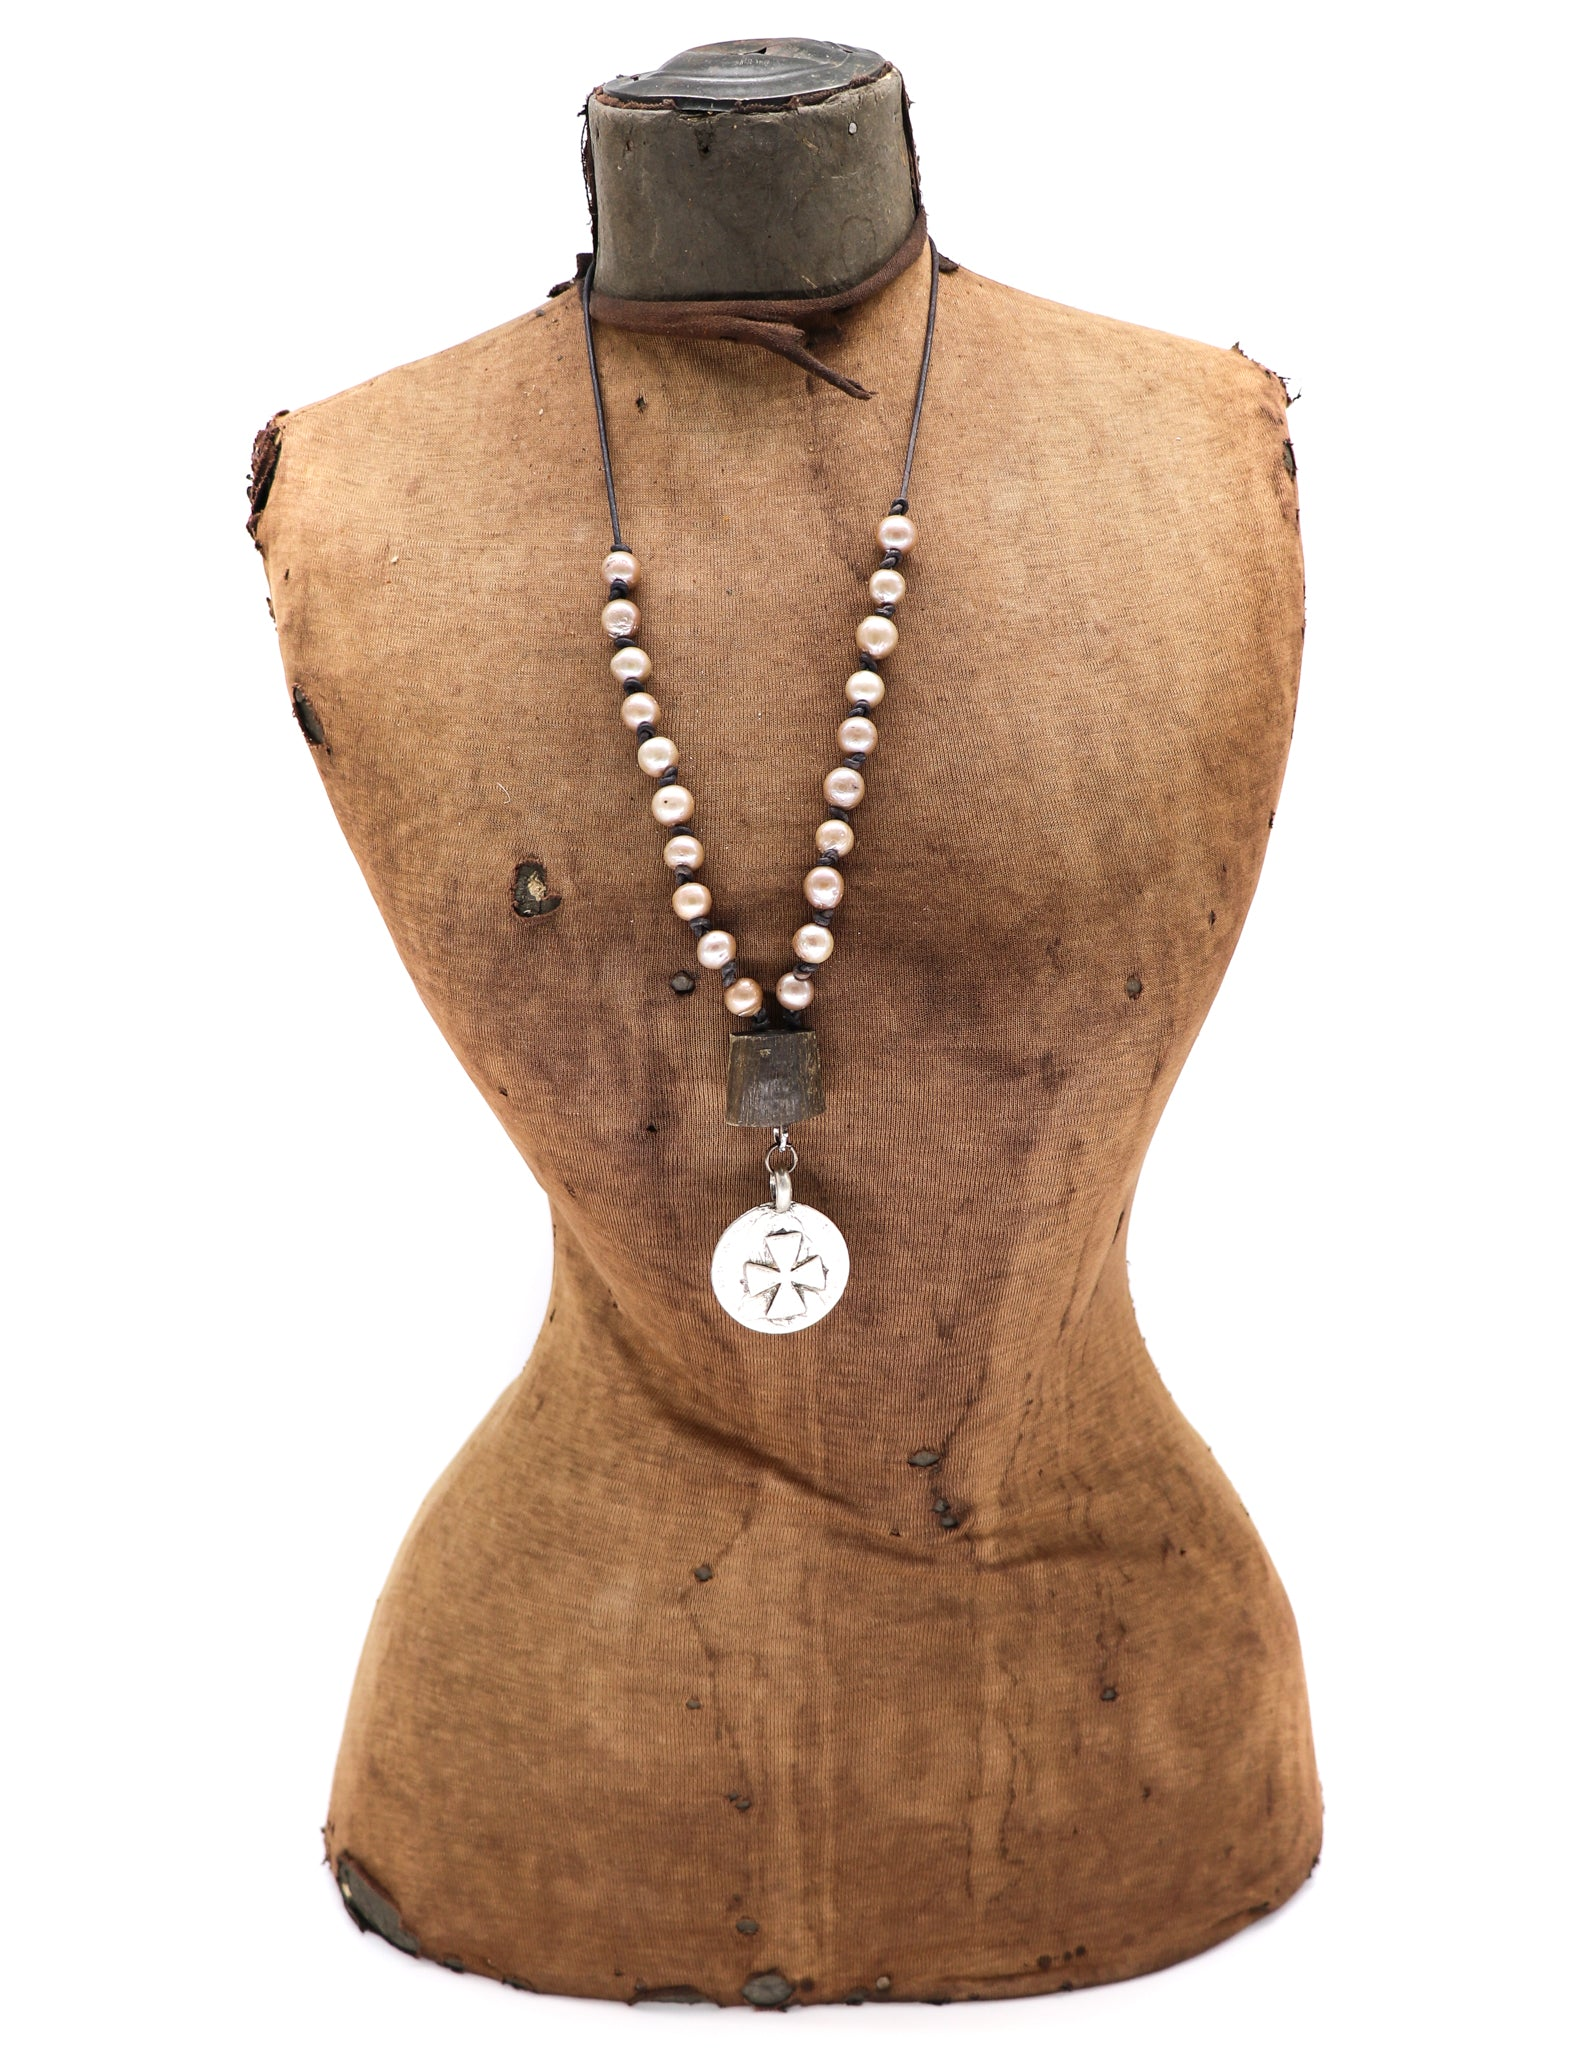 Champagne baroque pearls on leather necklace